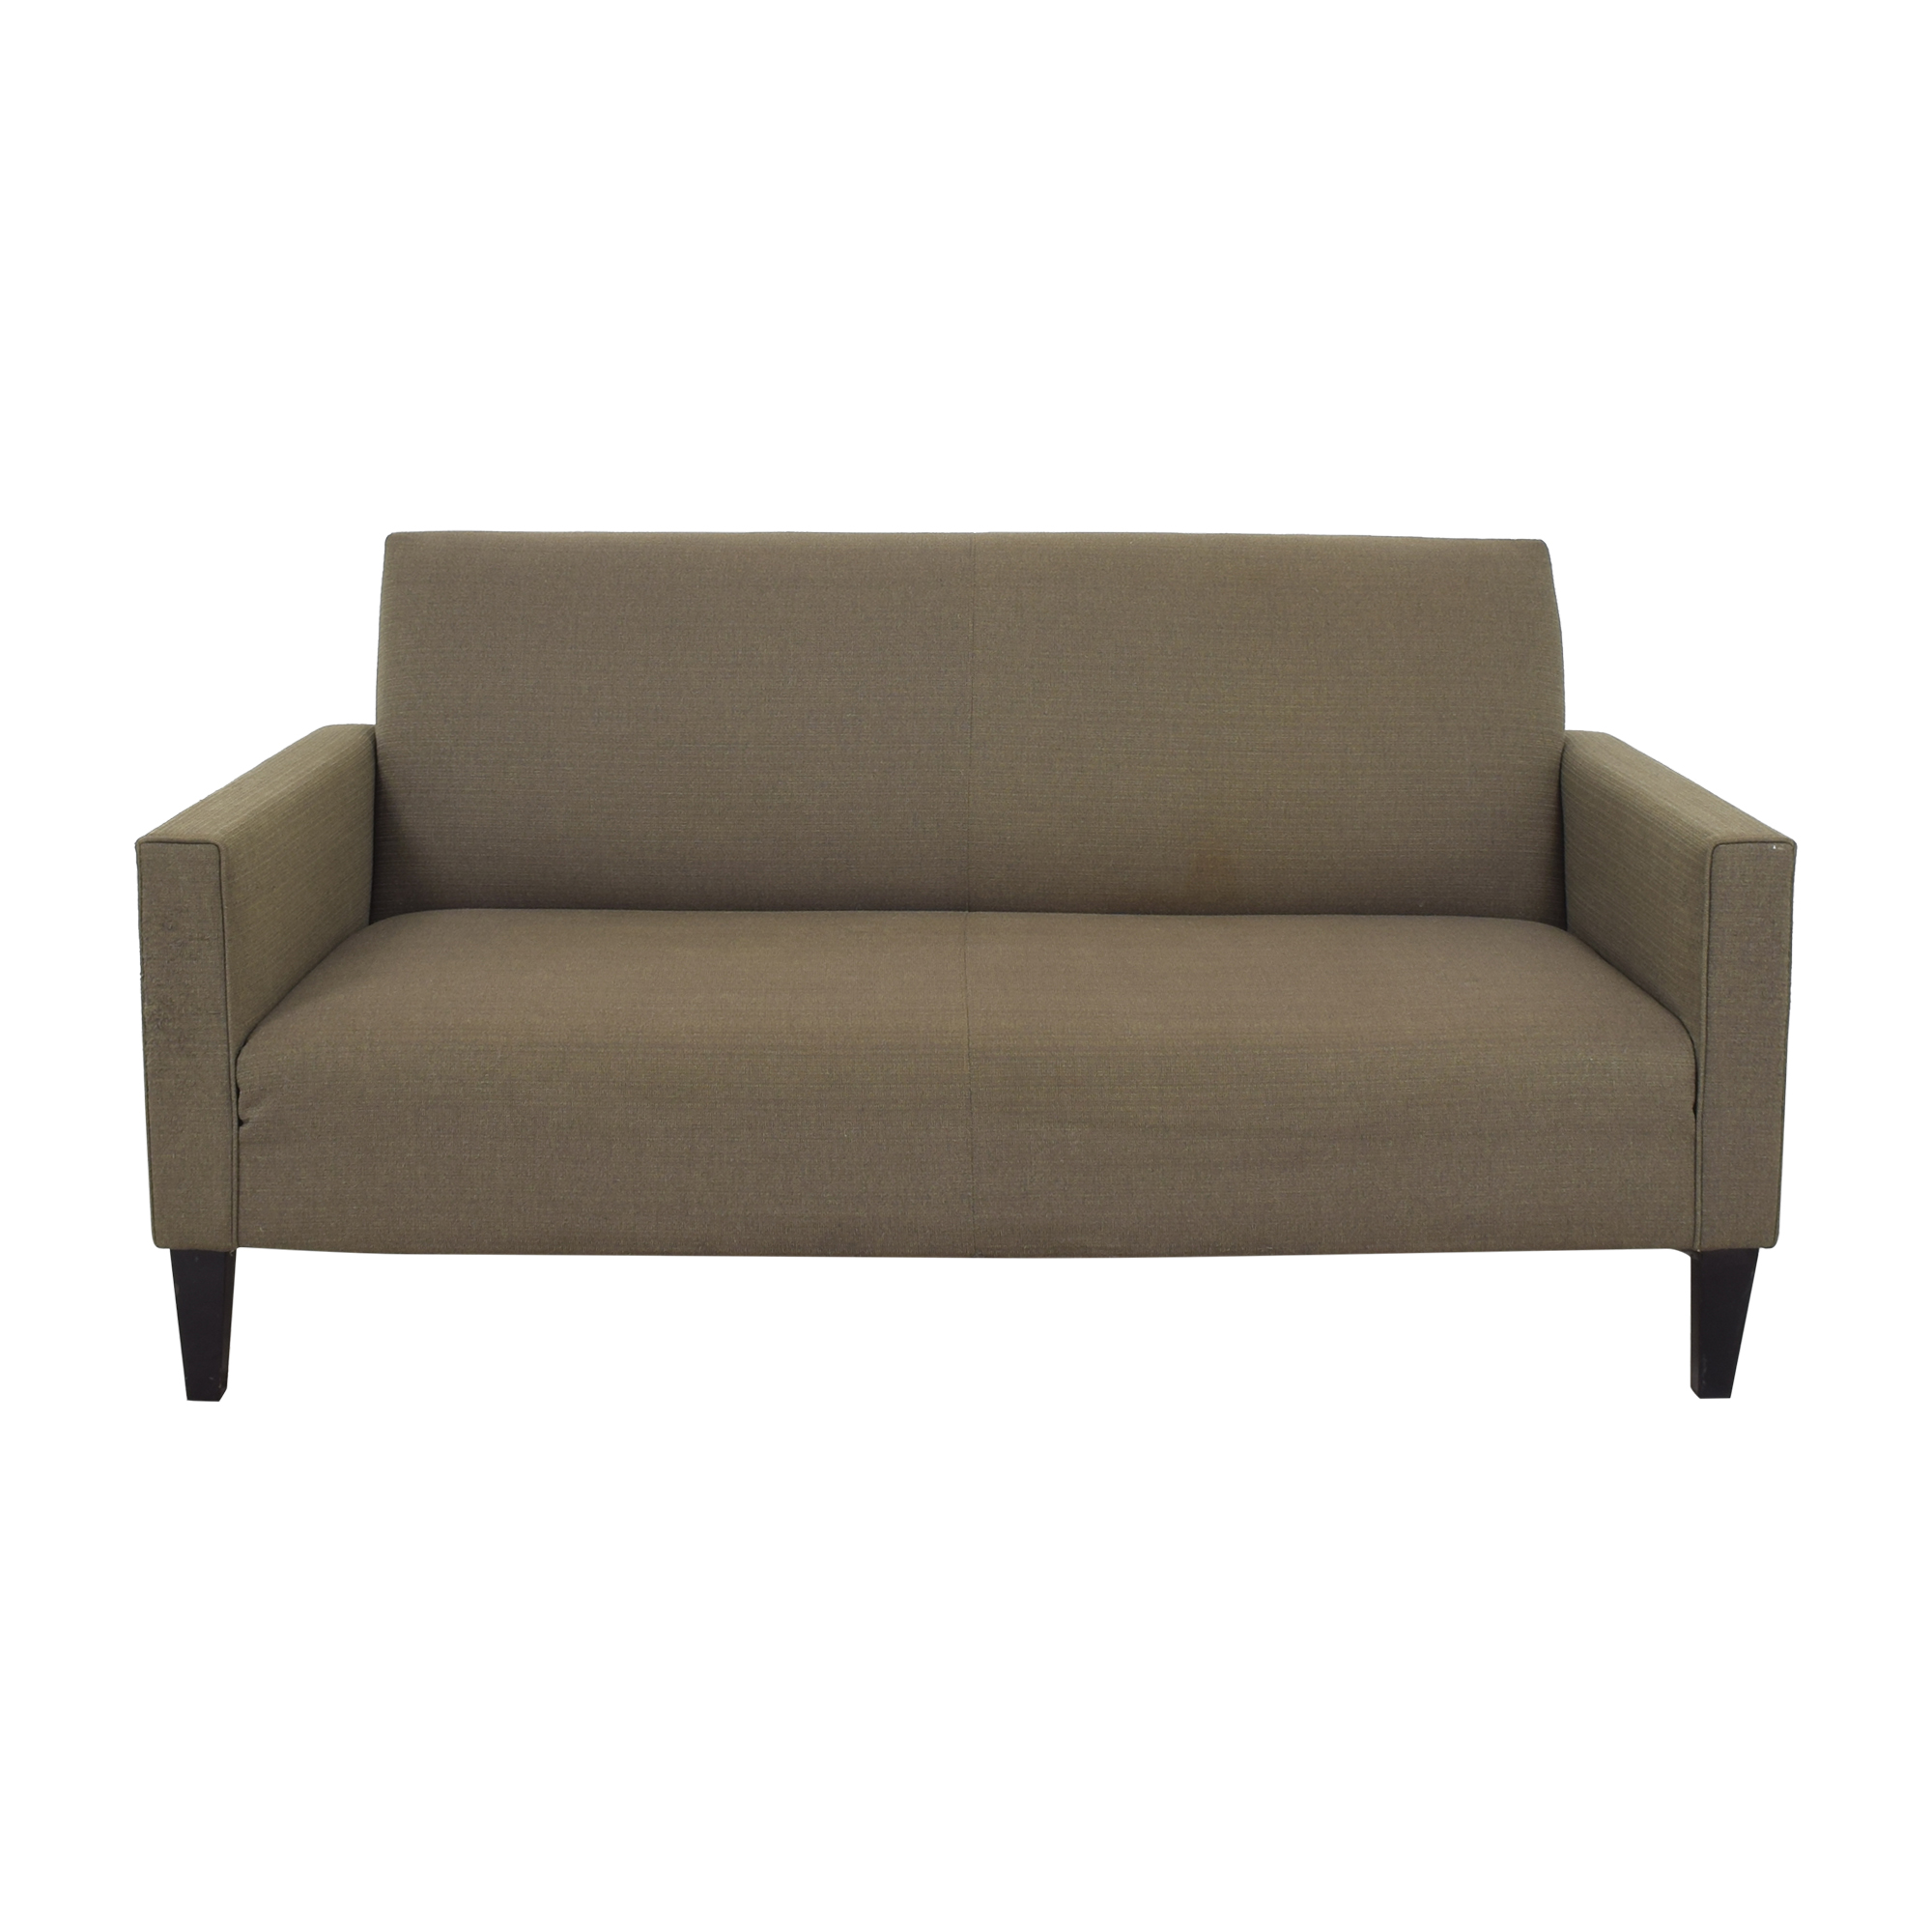 buy Crate & Barrel Single Cushion Sofa Crate & Barrel Classic Sofas